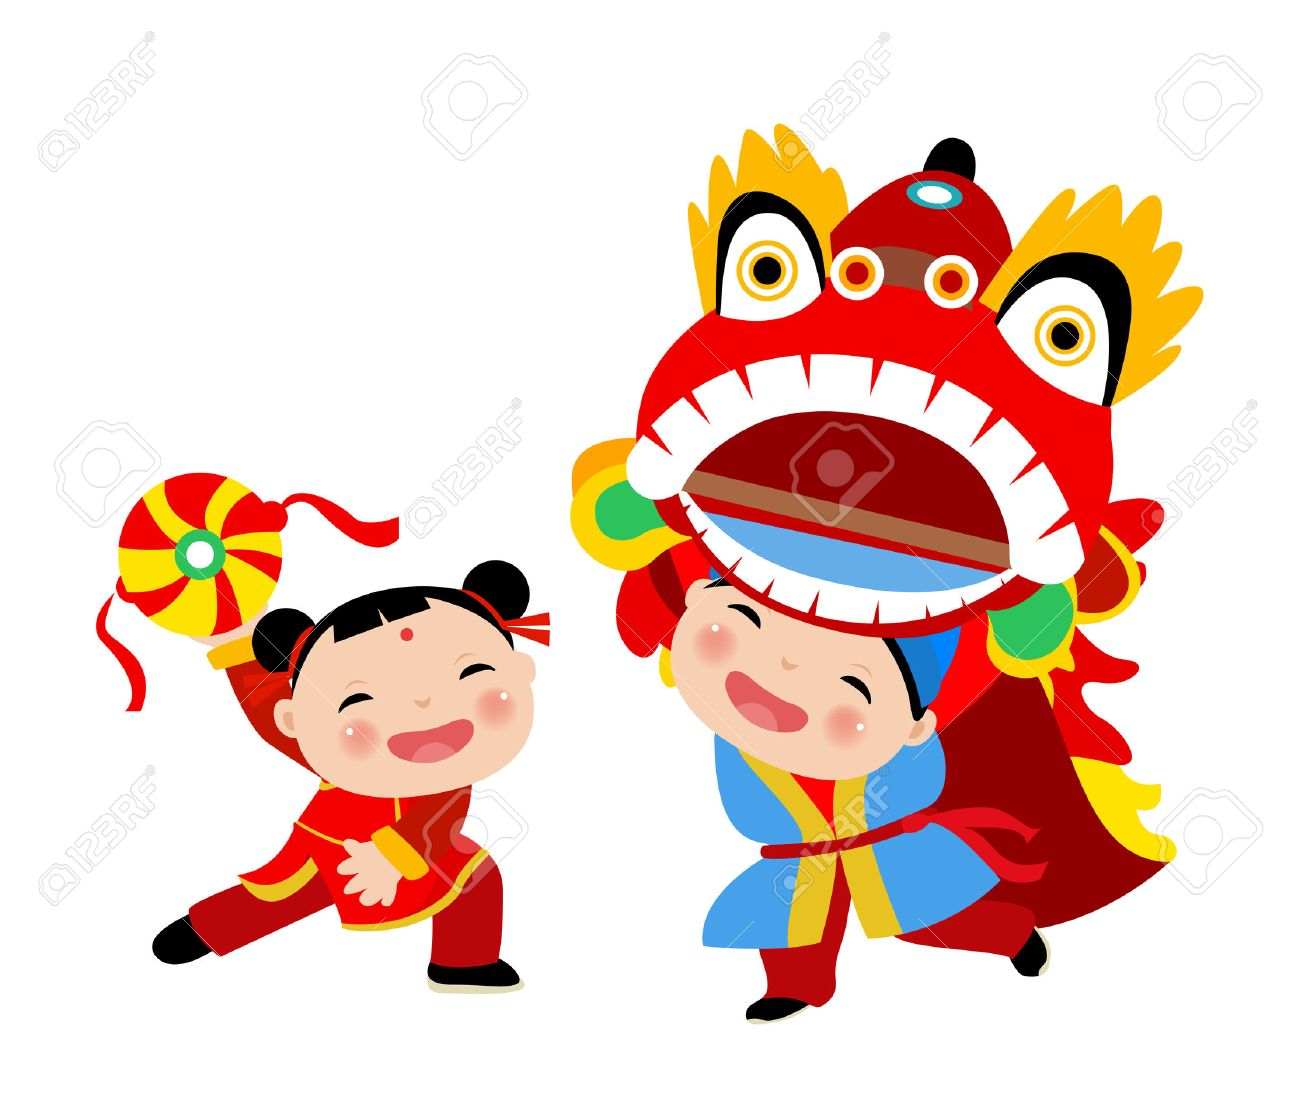 kids playing lion dance chinese new year stock vector 44506426 - Chinese New Year For Kids